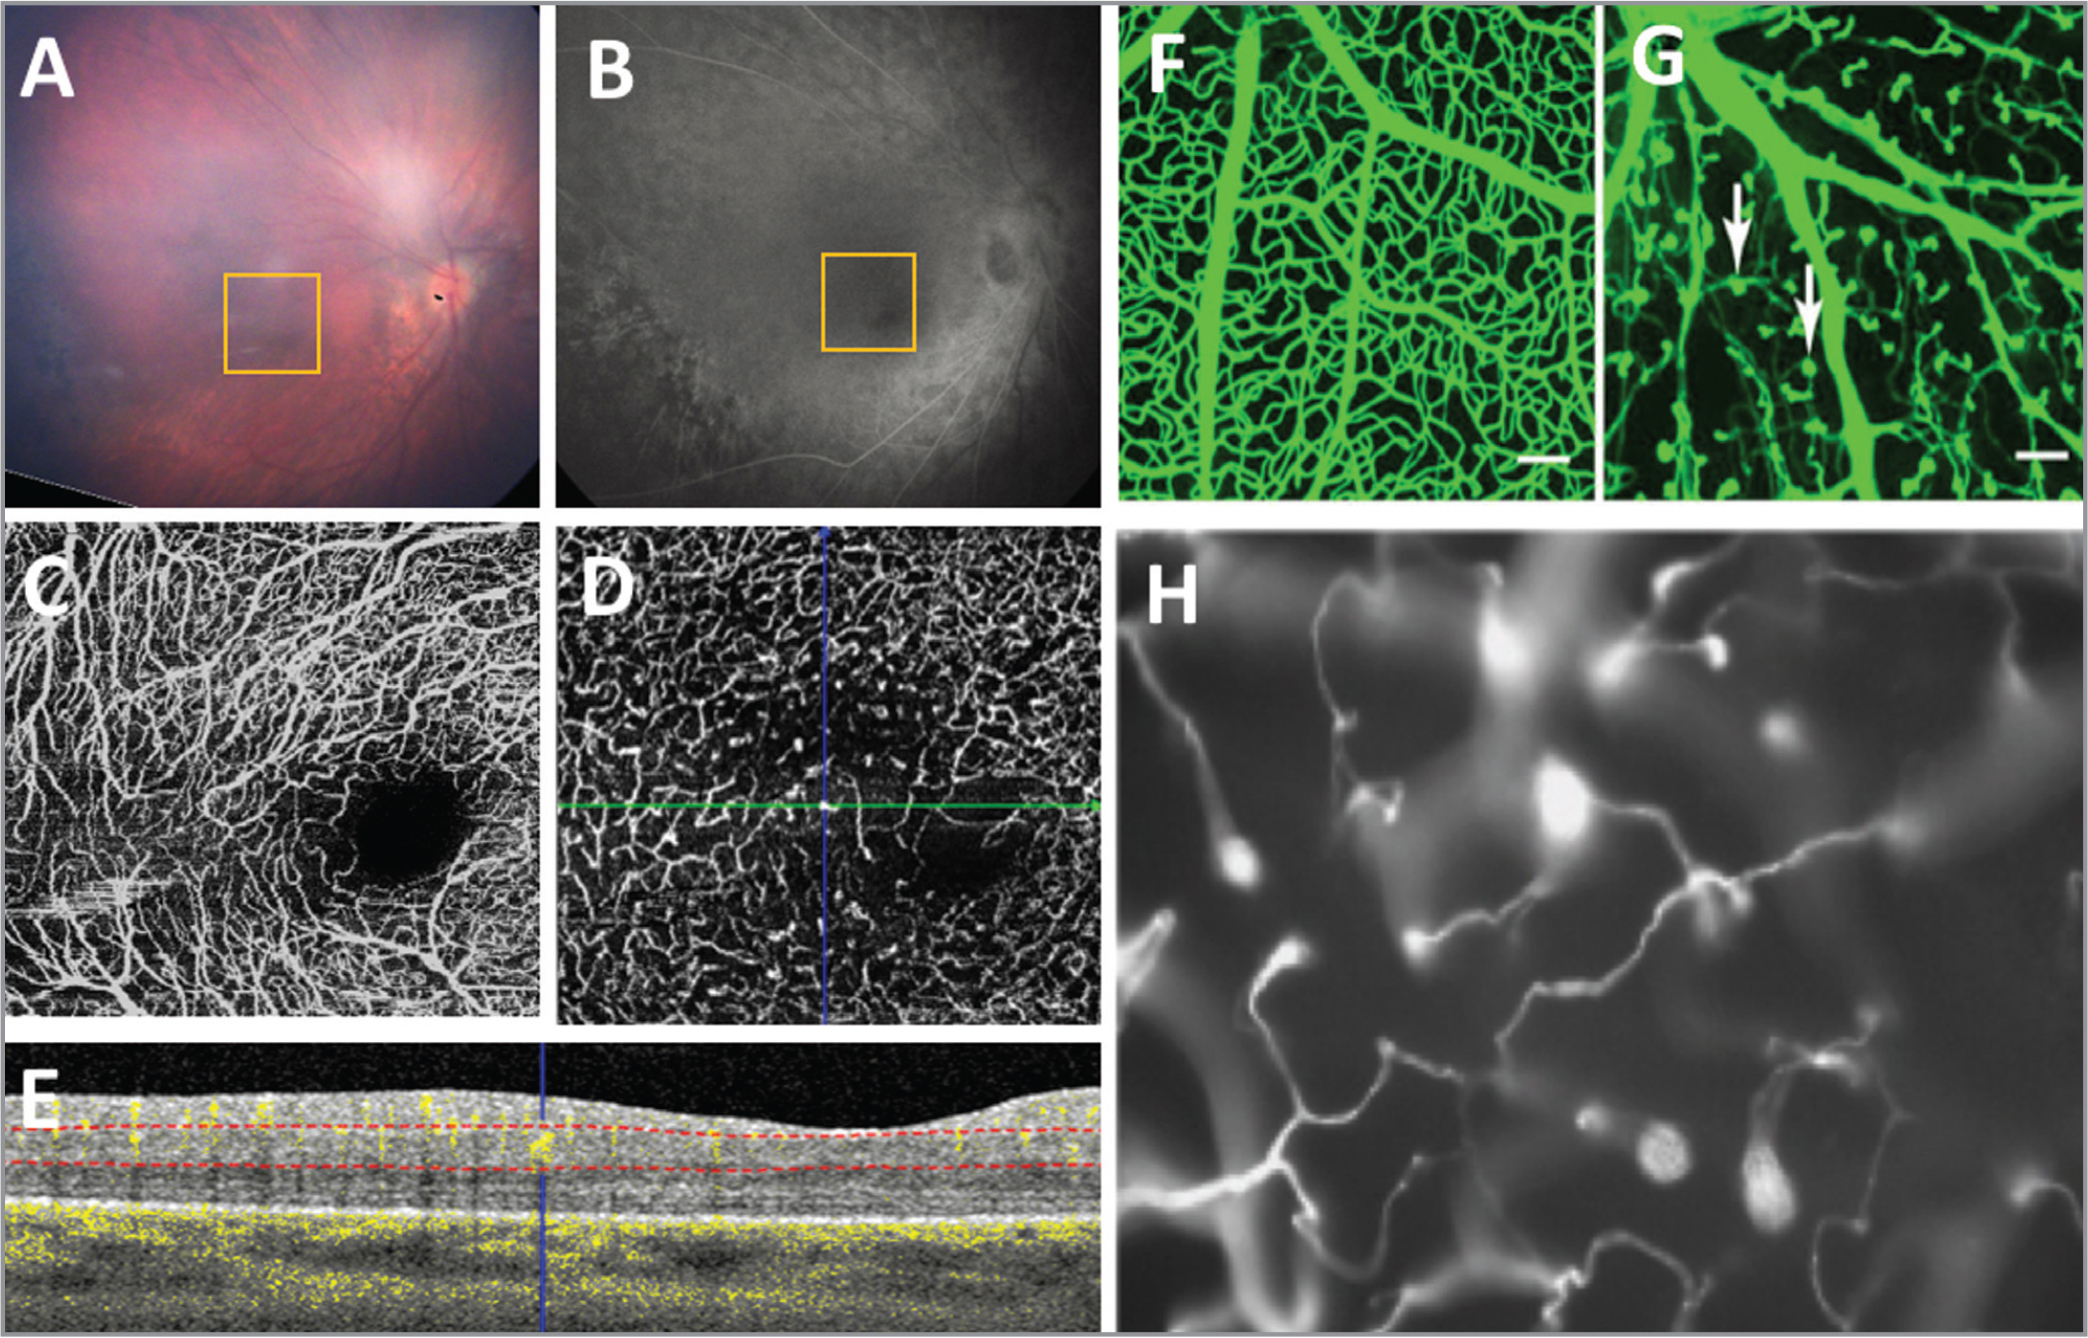 A 19-year-old, white, term-born male was diagnosed at 1.5 years old with familial exudative vitreoretinopathy (FEVR). Genetic testing showed a heterozygous mutation in the Wnt pathway LRP5 gene. The right eye (A, fundus photo; B, fluorescein angiography [FA]) underwent peripheral laser and cryotherapy. Optical coherence tomography angiography (OCTA) of the macula showed vessel dilation, areas of nonuniform vessel density, vascular loops, and straightened vessels in the superficial vascular complex (SVC) (C). The deep vascular complex (DVC) had a disorganized pattern, curls and loops, areas of decreased density, and characteristic end bulbs (D). (E) An OCT/OCTA B-scan of the location of the green line in (D) is shown, with the blue crosshair over one of the end bulbs. The dotted red lines indicate the segmentation of the retinal layers used to form the en face OCTA image of the DVC. The pattern seen in the patient resembles that of vasculature in mutant mice with defective Wnt signaling (F–H). (F, G) Image adapted from Ye et al.31 showing a wildtype (WT) mouse compared to a Frizzled4 knockout (FZ4−/−) mouse with white arrows pointing to clusters of endothelial cells only partially penetrating into the retina. (H) Image adapted from Xia et al.21 demonstrating incomplete vascularization with attenuated vessels in a homozygous r18 mutant mouse carrying a frameshift mutation in the LRP5 gene.